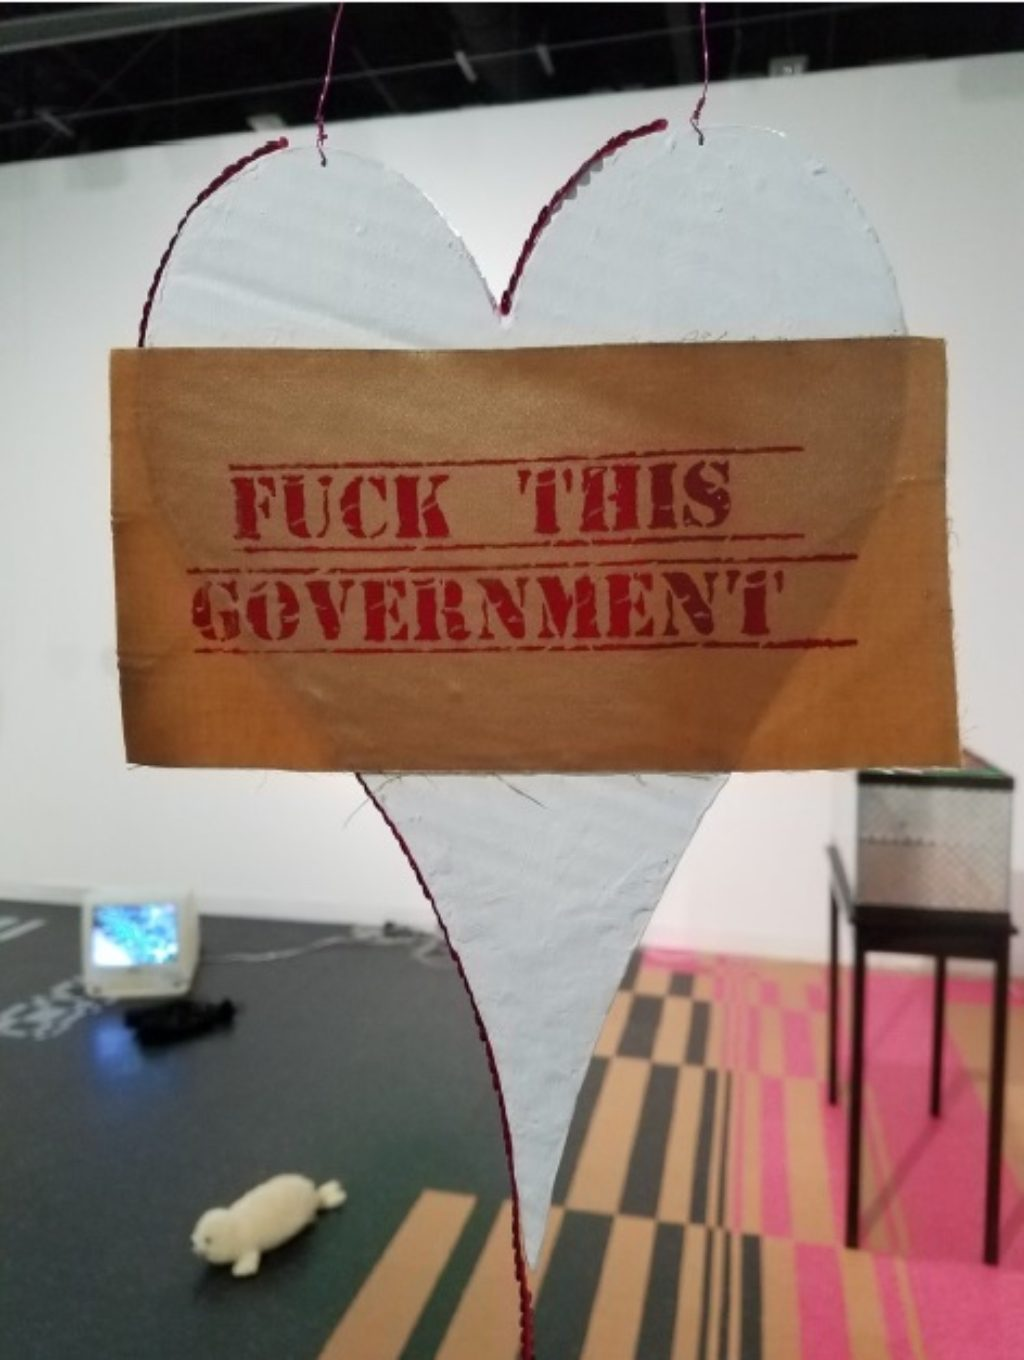 Maggie Lee, Fthis.gov, 2016 gesso, modge podge, cardboard, laser photocopy, acrylic, wire, silkscreen on fabric Heart: 13 x 9 inches (33.02 x 22.86 cm),Sequined string: 79 inches (200.66 cm),Hanging wire: 54 inches (137.16 cm) Photo courtesy of the gallery.